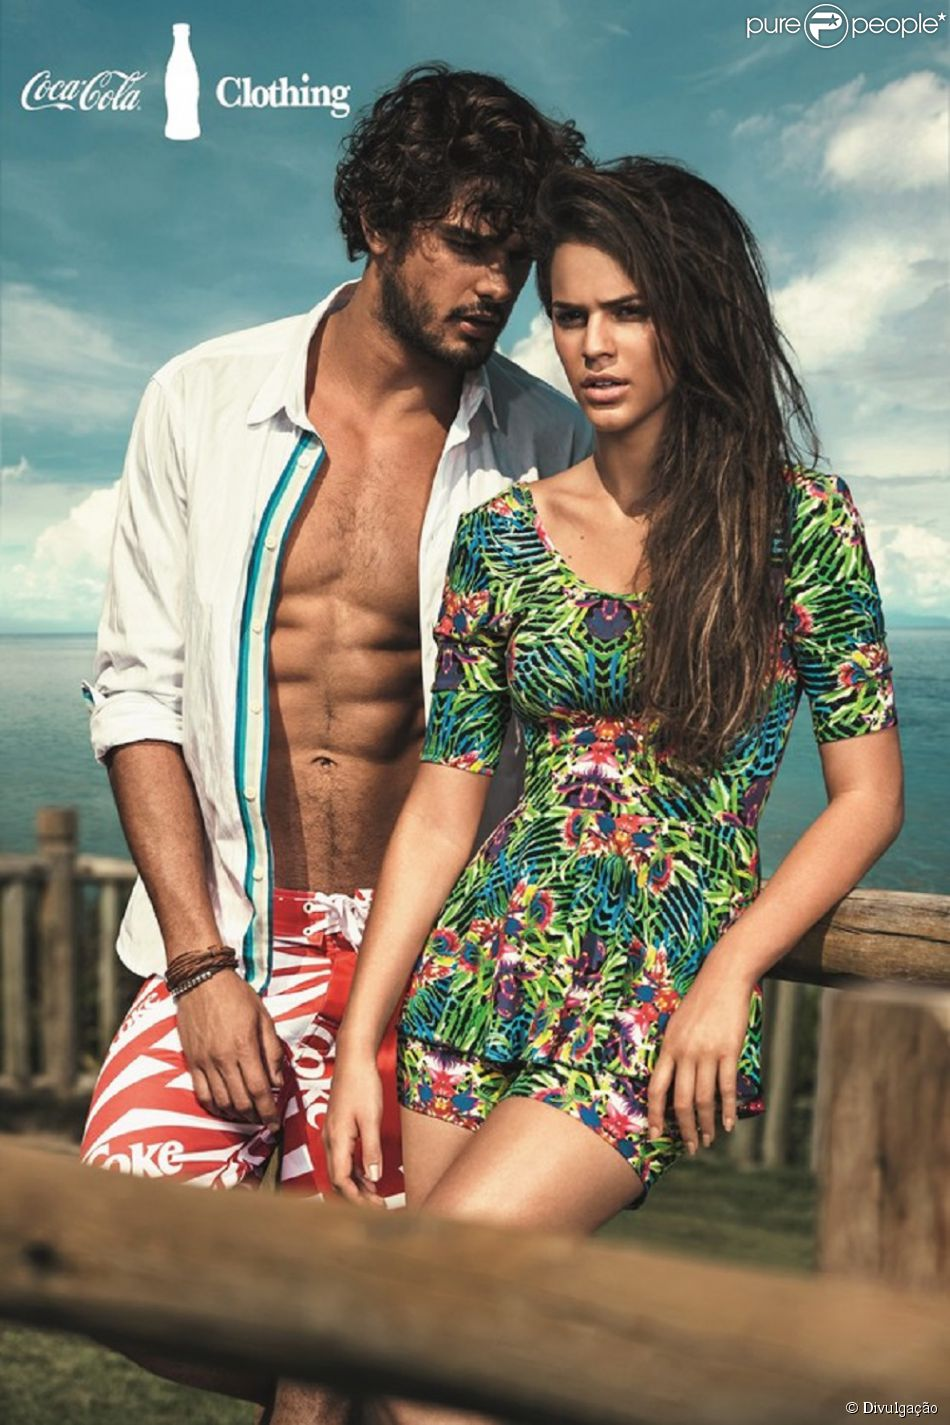 Bruna Marquezine and Marlon Teixeira dated in 2014 till 2015